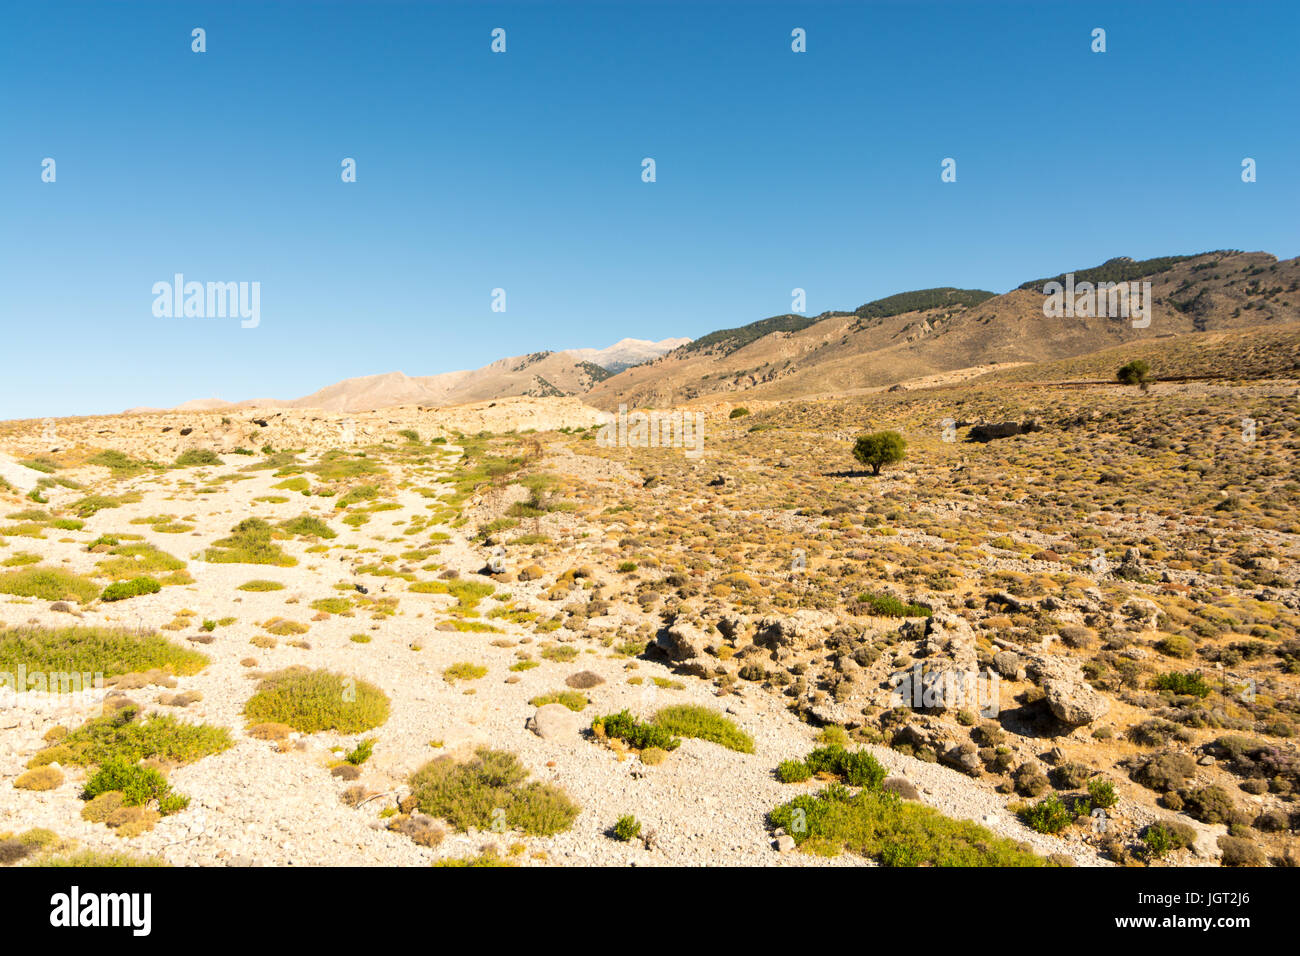 Barren scorched landscape of southern Crete, Greece with mountains rising in the distance. - Stock Image